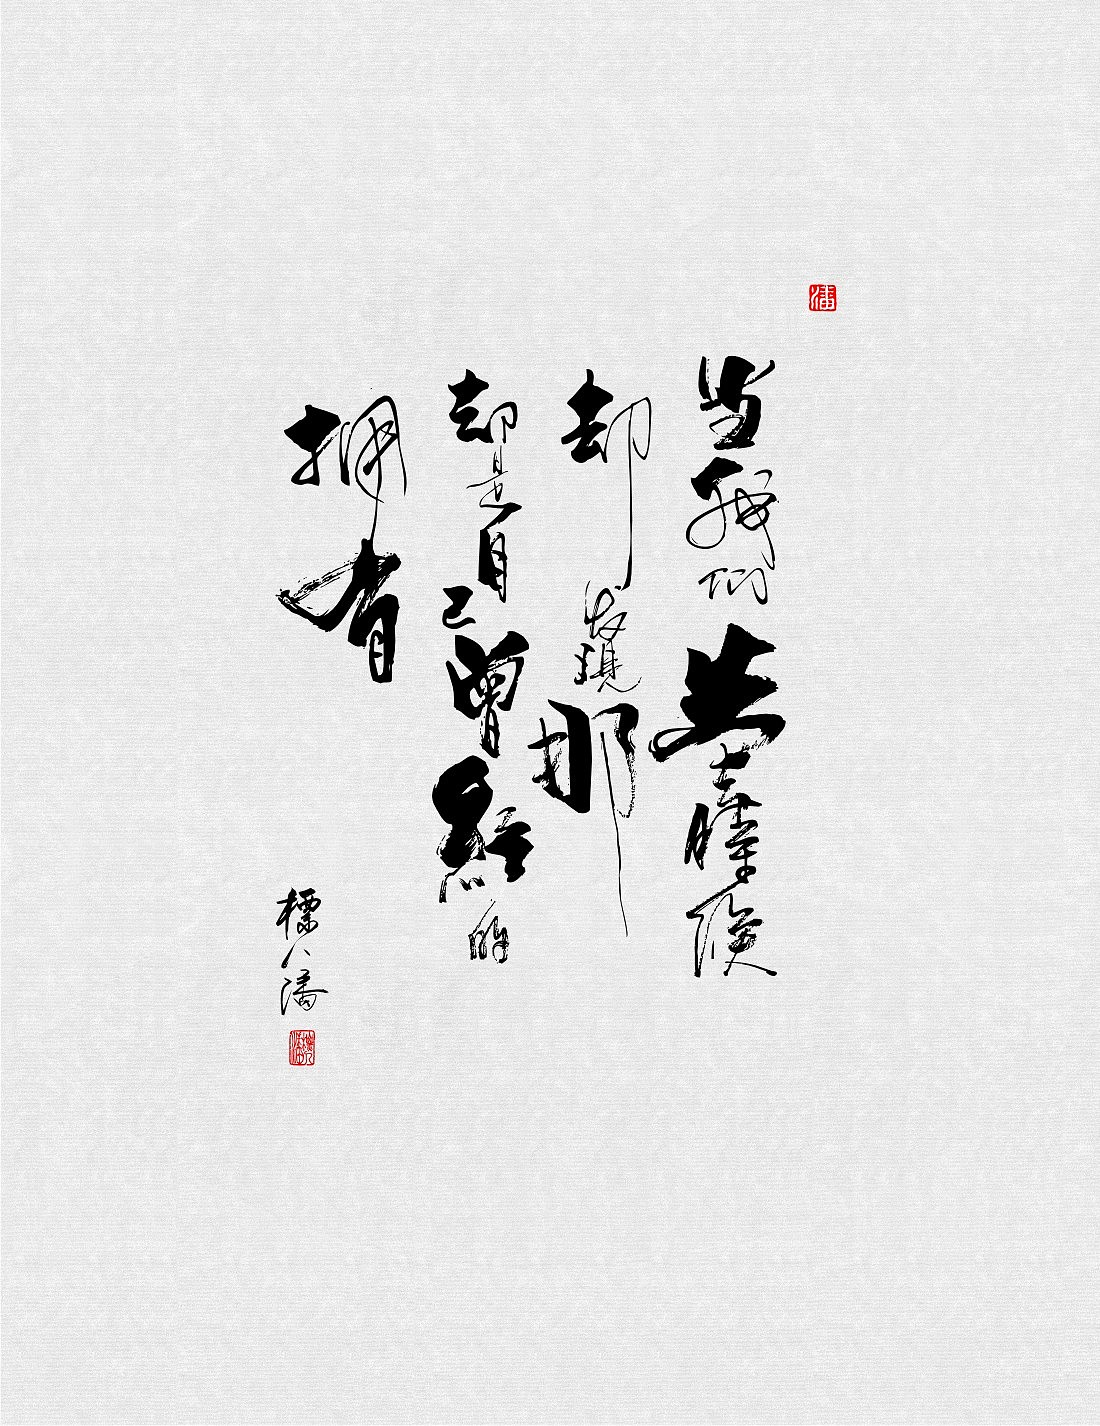 15P Chinese traditional calligraphy brush calligraphy font style appreciation #.82